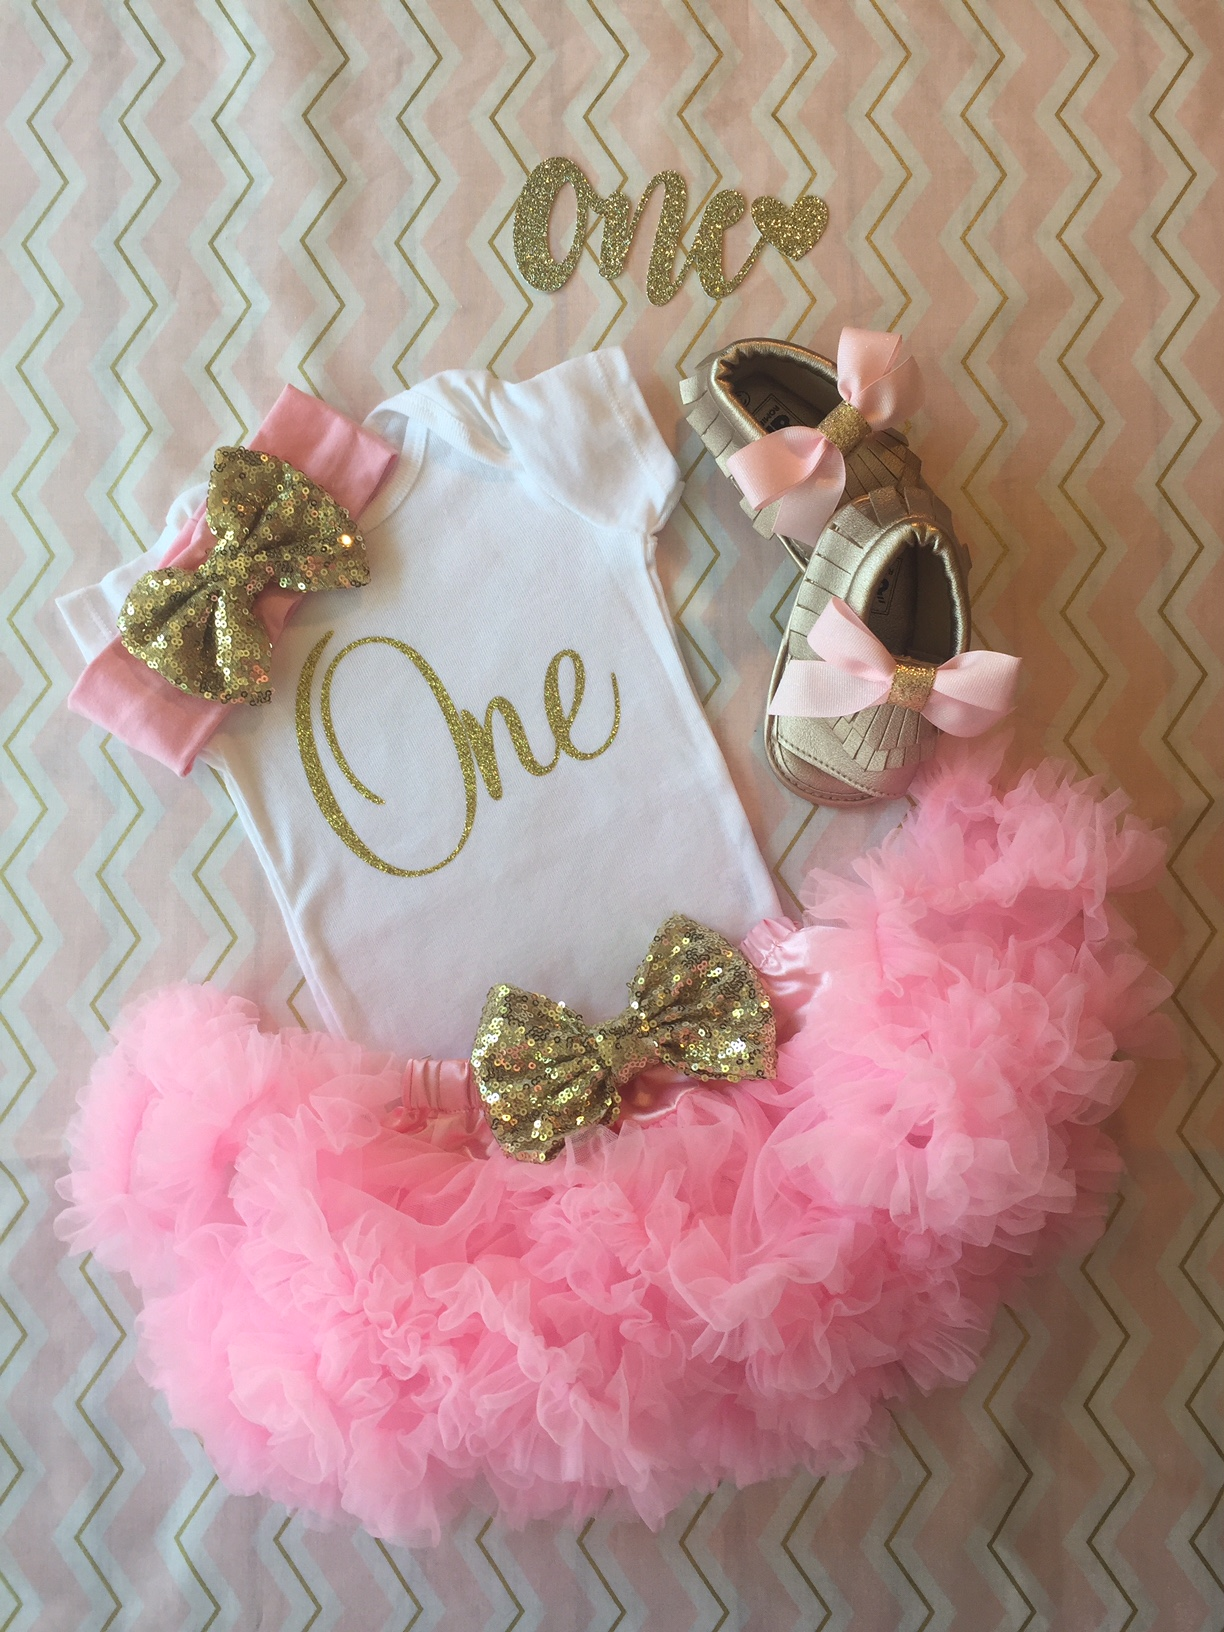 55550f7362cd5 First Birthday Outfit Girl, Pink and gold birthday outfit, 1st Birthday  outfit girl, baby girl birthday, first birthday outfit pink and gold